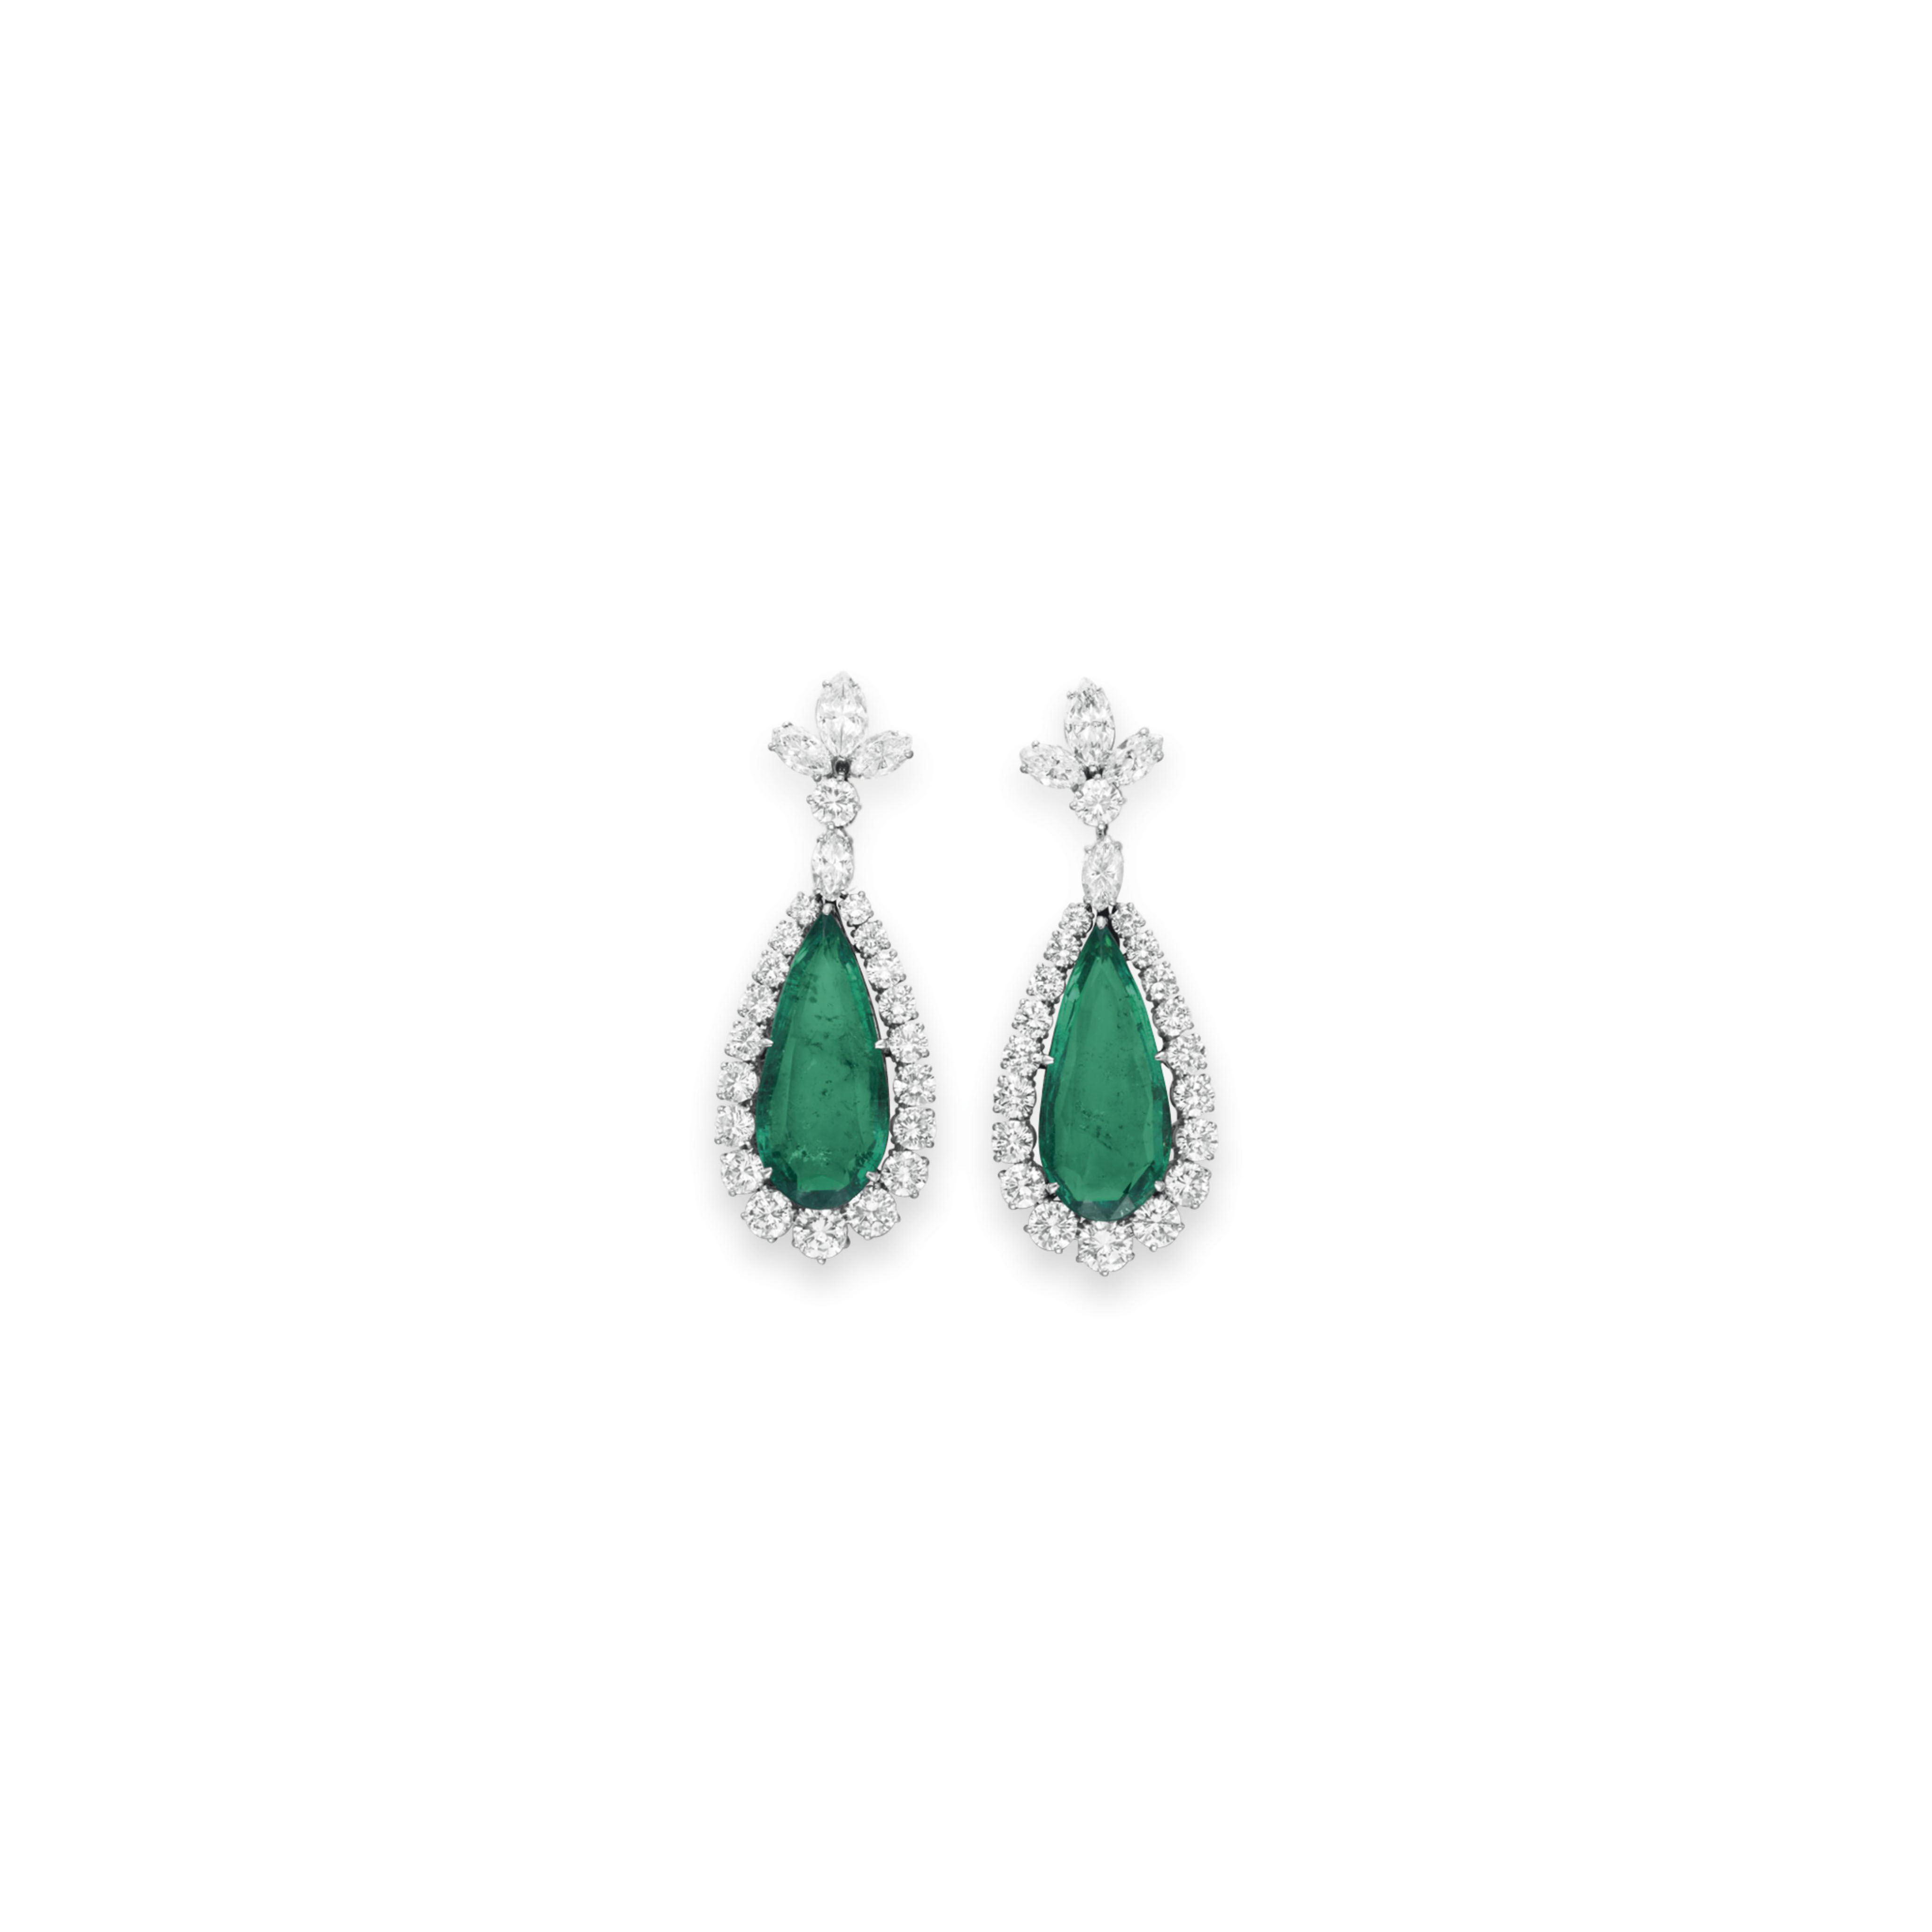 A PAIR OF EMERALD AND DIAMOND EAR PENDANTS, BY BVLGARI